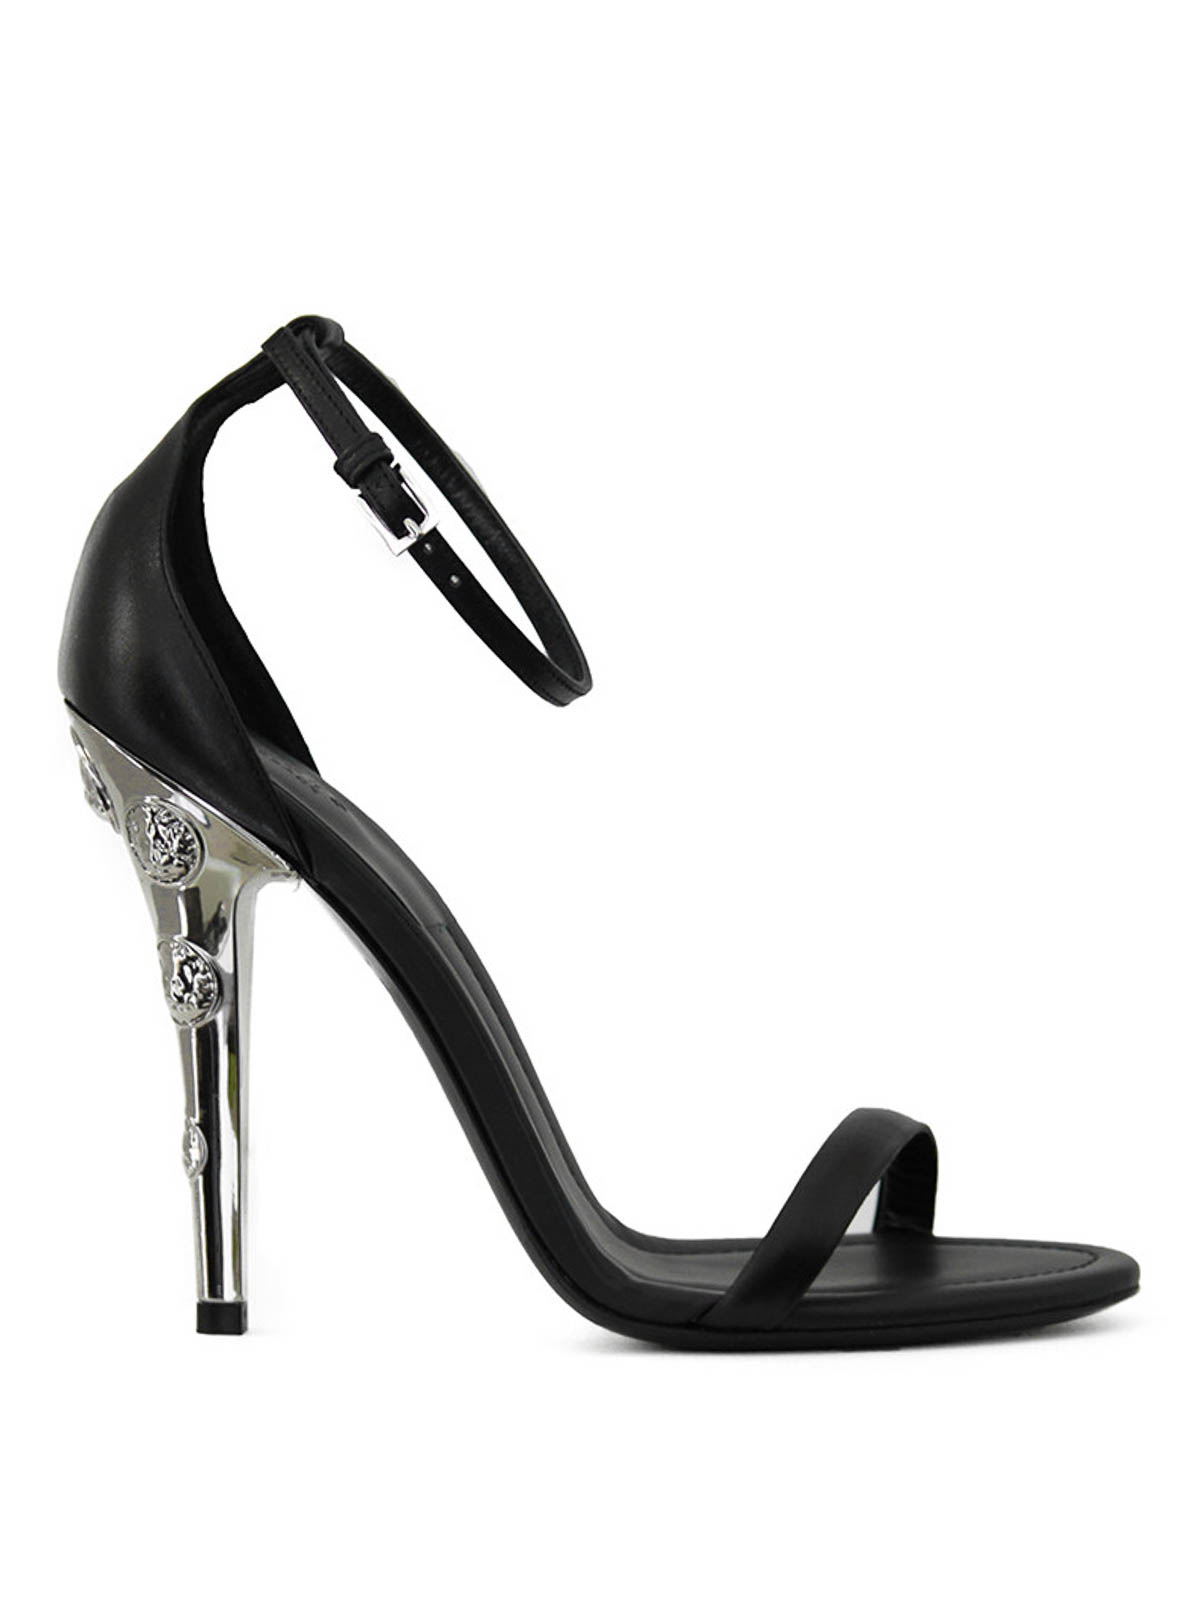 VERSUS VERSACE Sandals cheap discounts from china sale online outlet excellent supply outlet pay with paypal q4g8AGuIwg